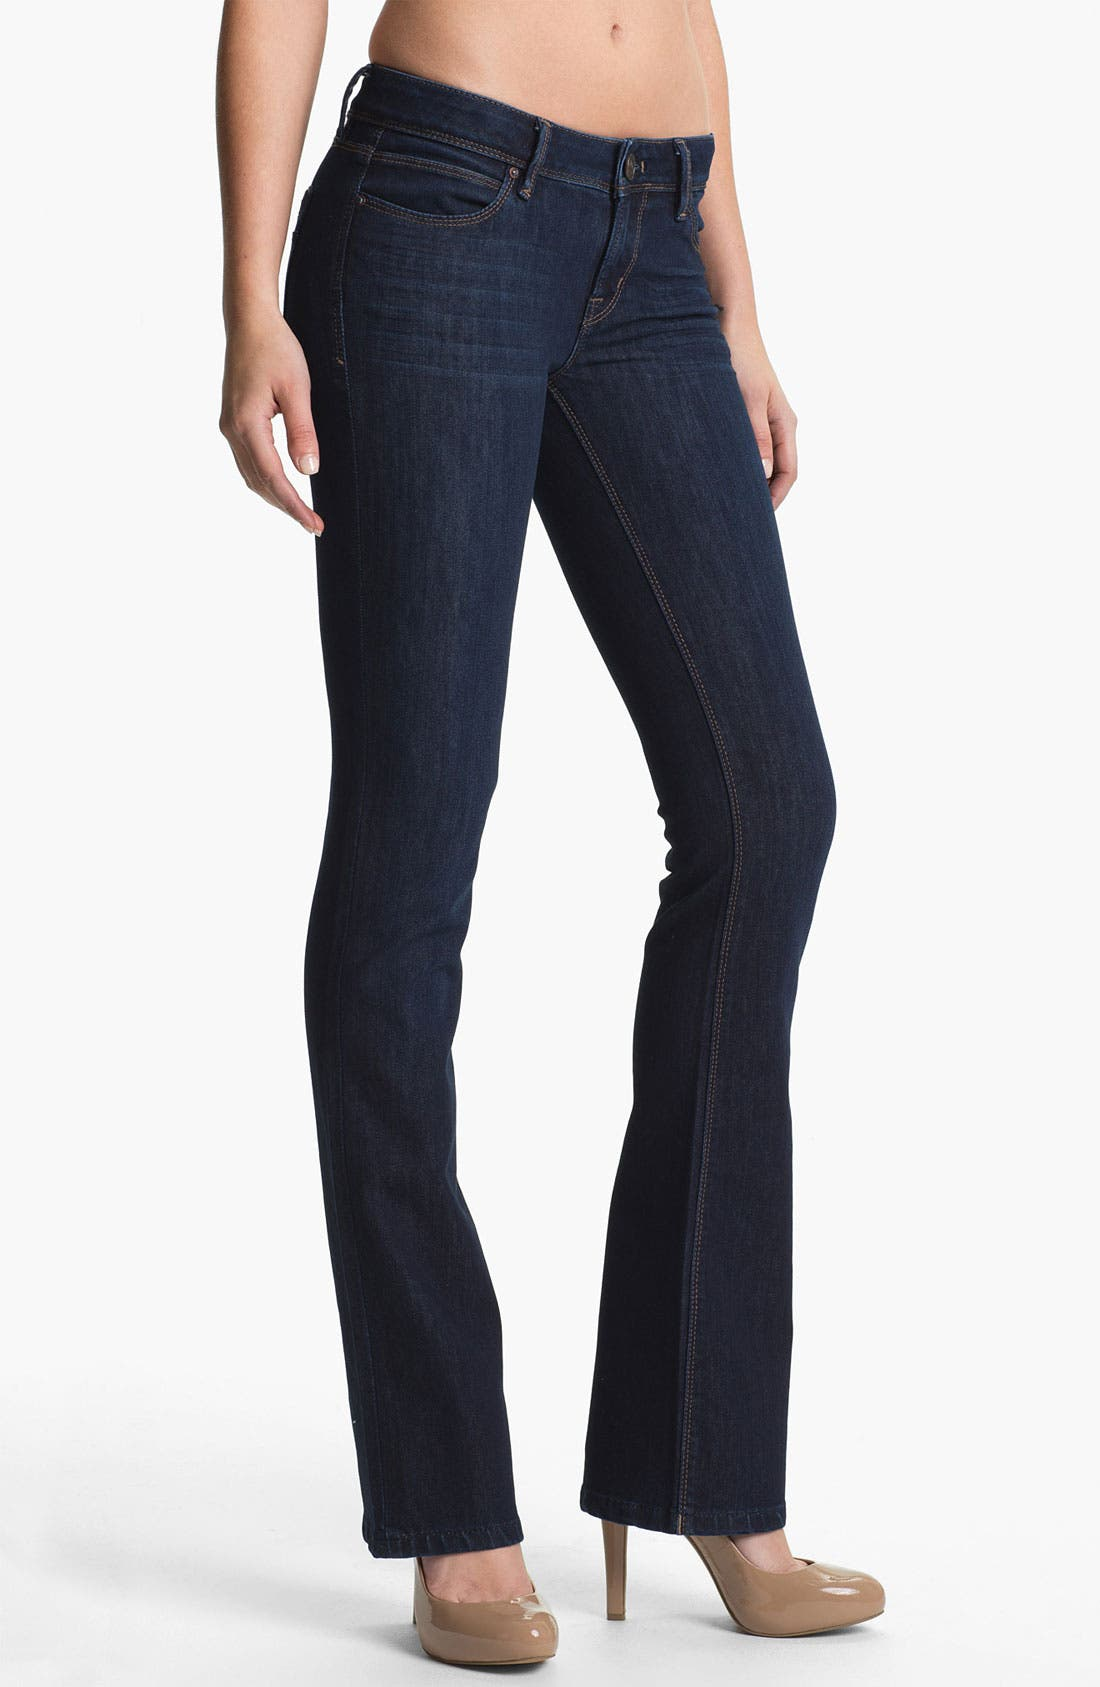 Alternate Image 1 Selected - DL1961 'Cindy' Slim Boot Jeans (Sonic)